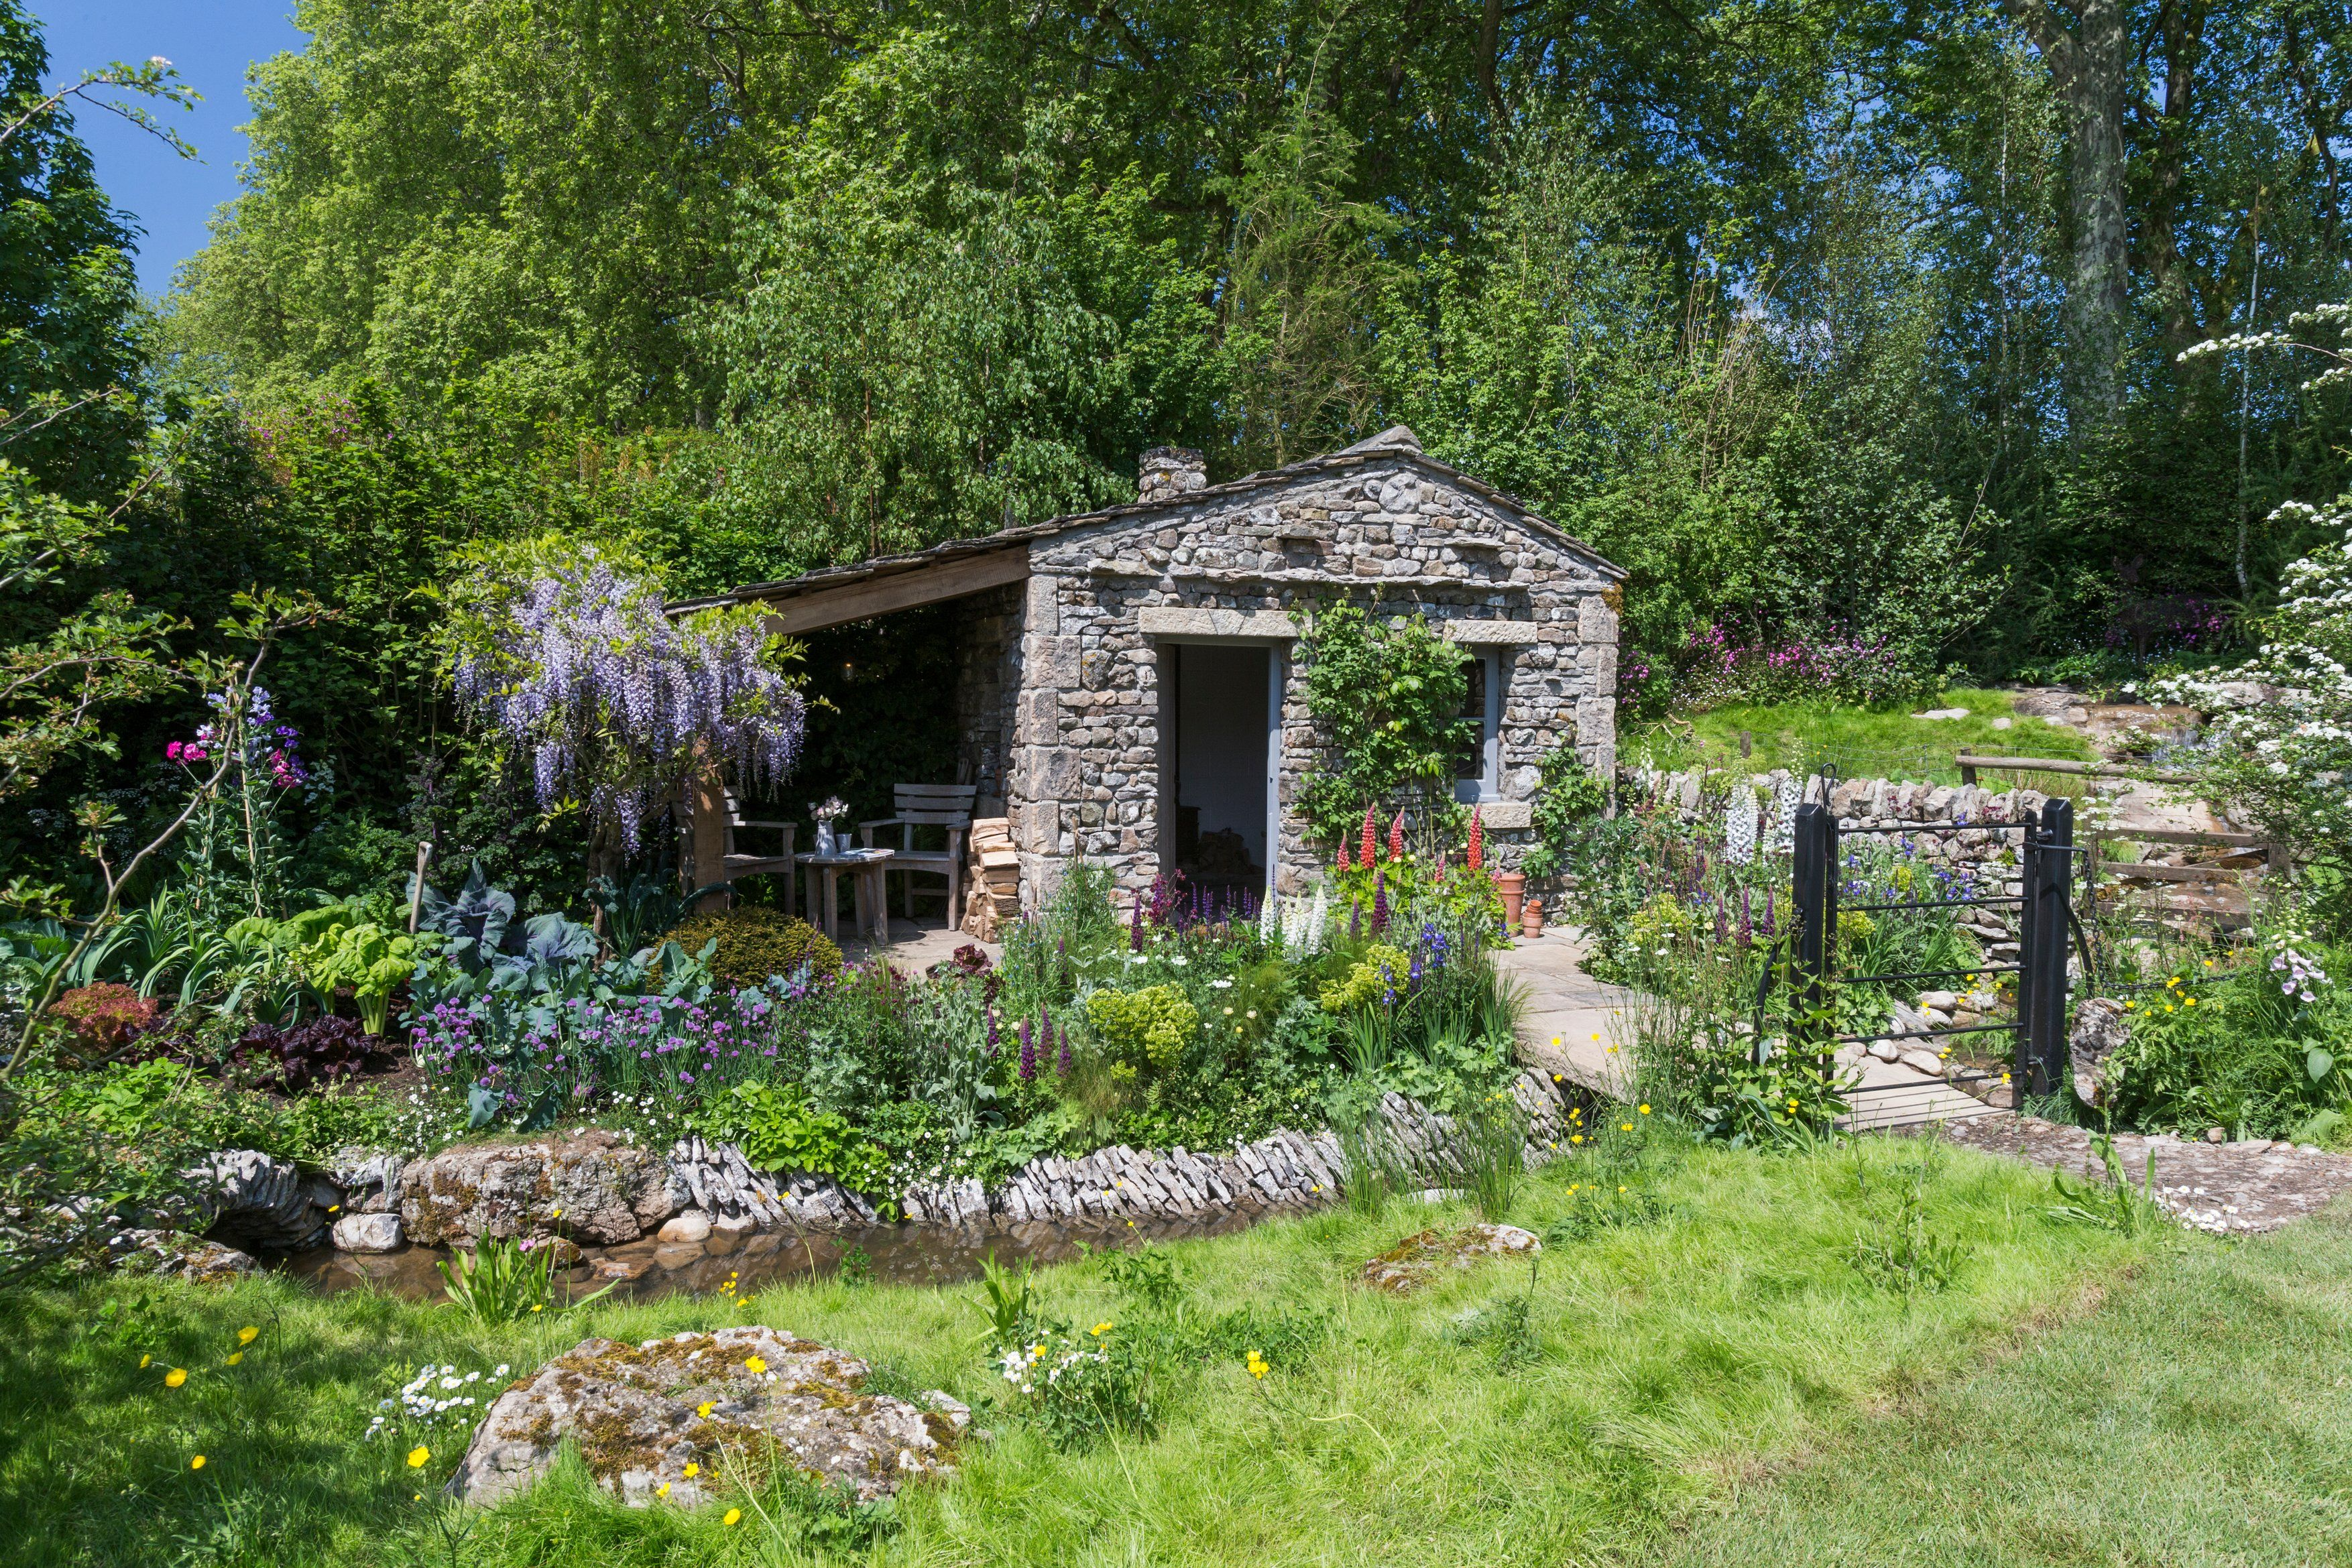 Chelsea Flower Show's Garden of the Decade winner: Mark Gregory's 2018 Welcome to Yorkshire Garden